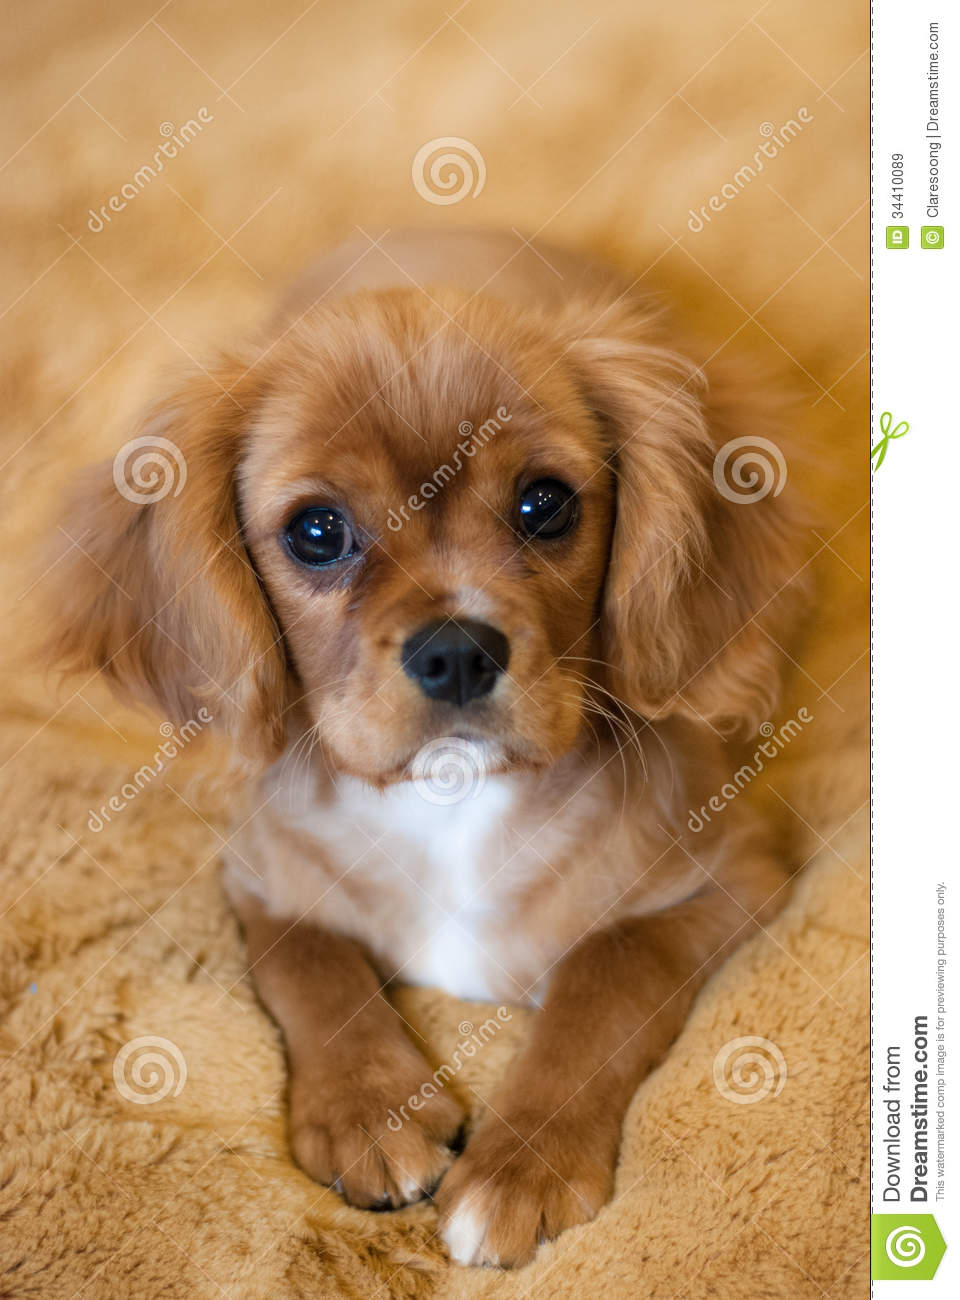 Cavalier King Charles Spaniel Puppy Stock Image Image Of Eyes Charles 34410089